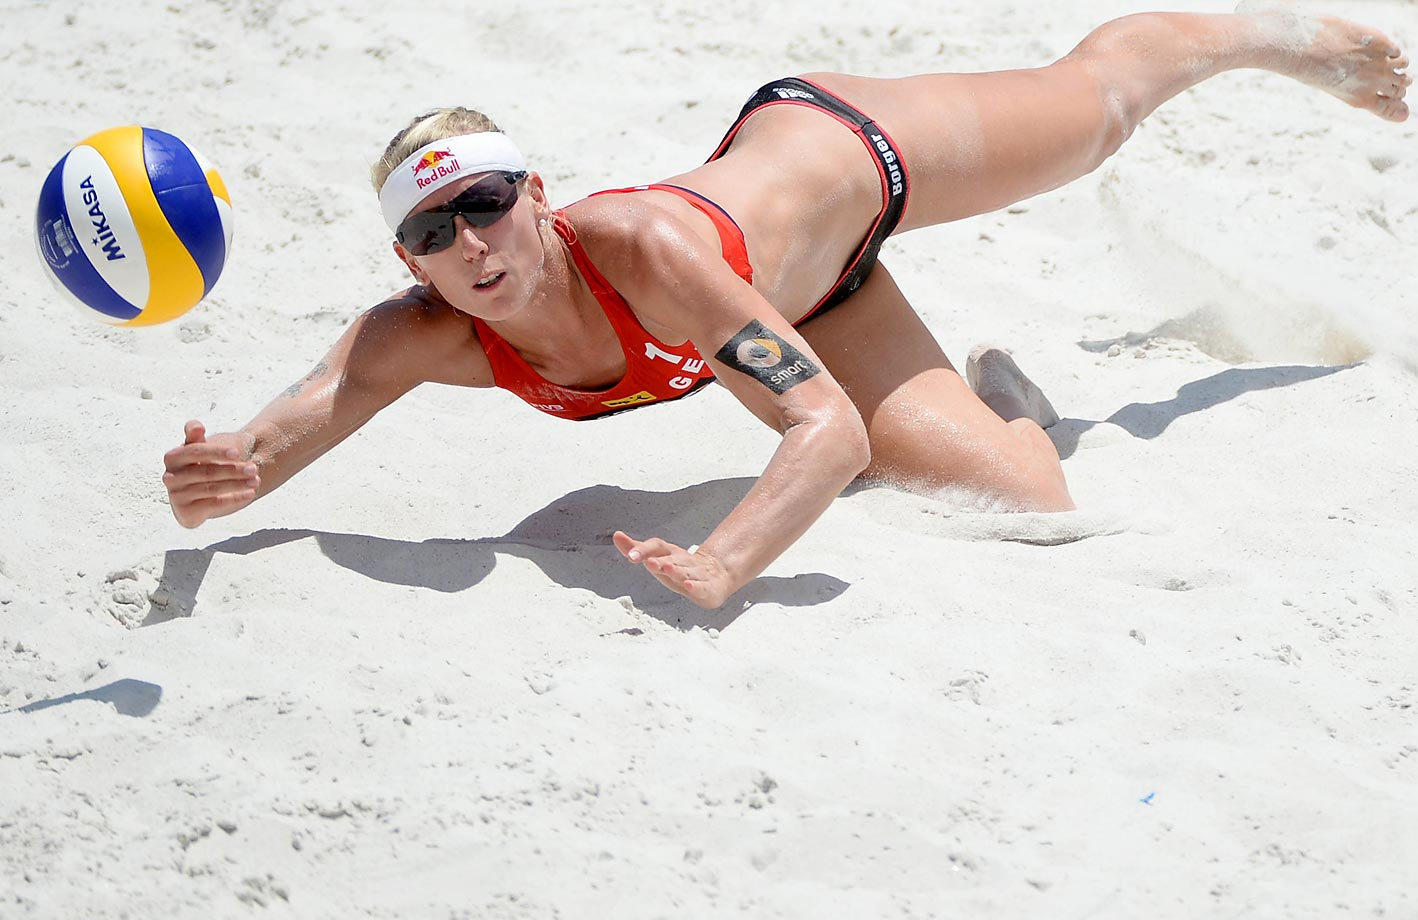 Karla Borger Of Germany dives for the ball during the semifinals.